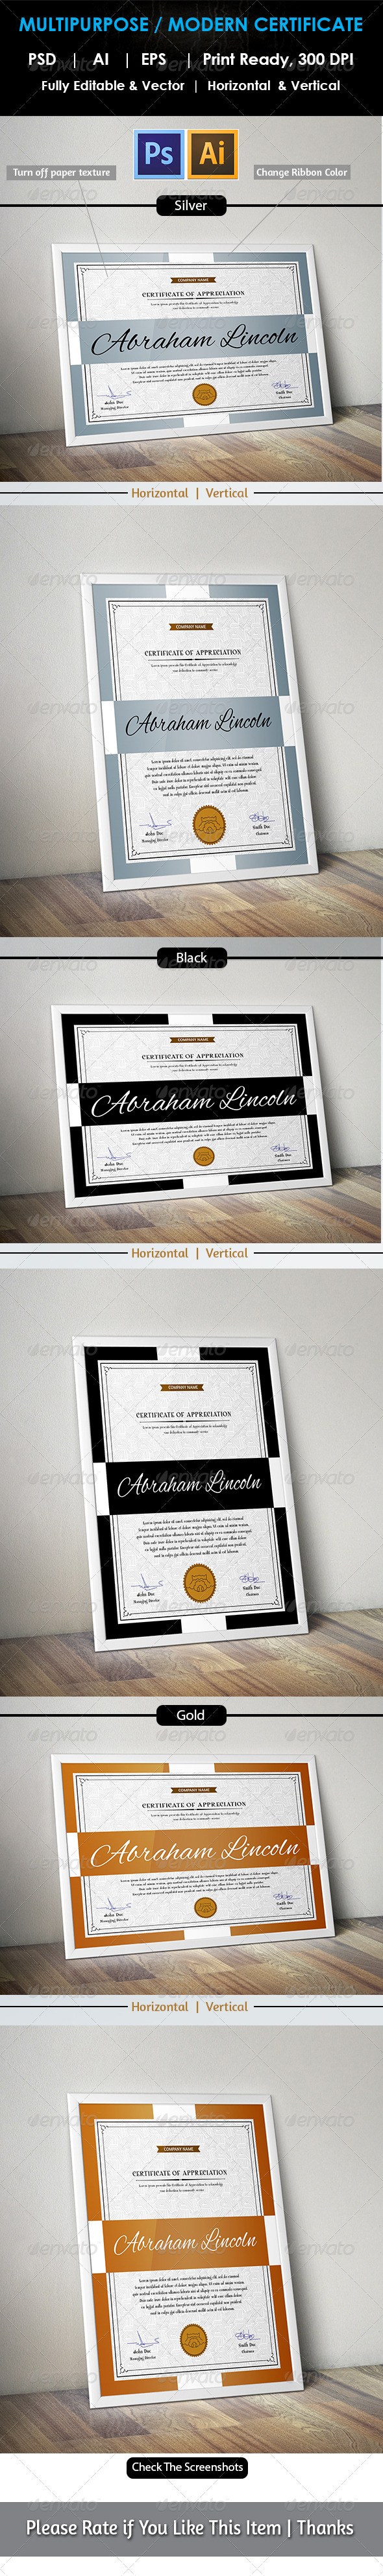 GraphicRiver Simple Multipurpose Certificate GD005 7749139